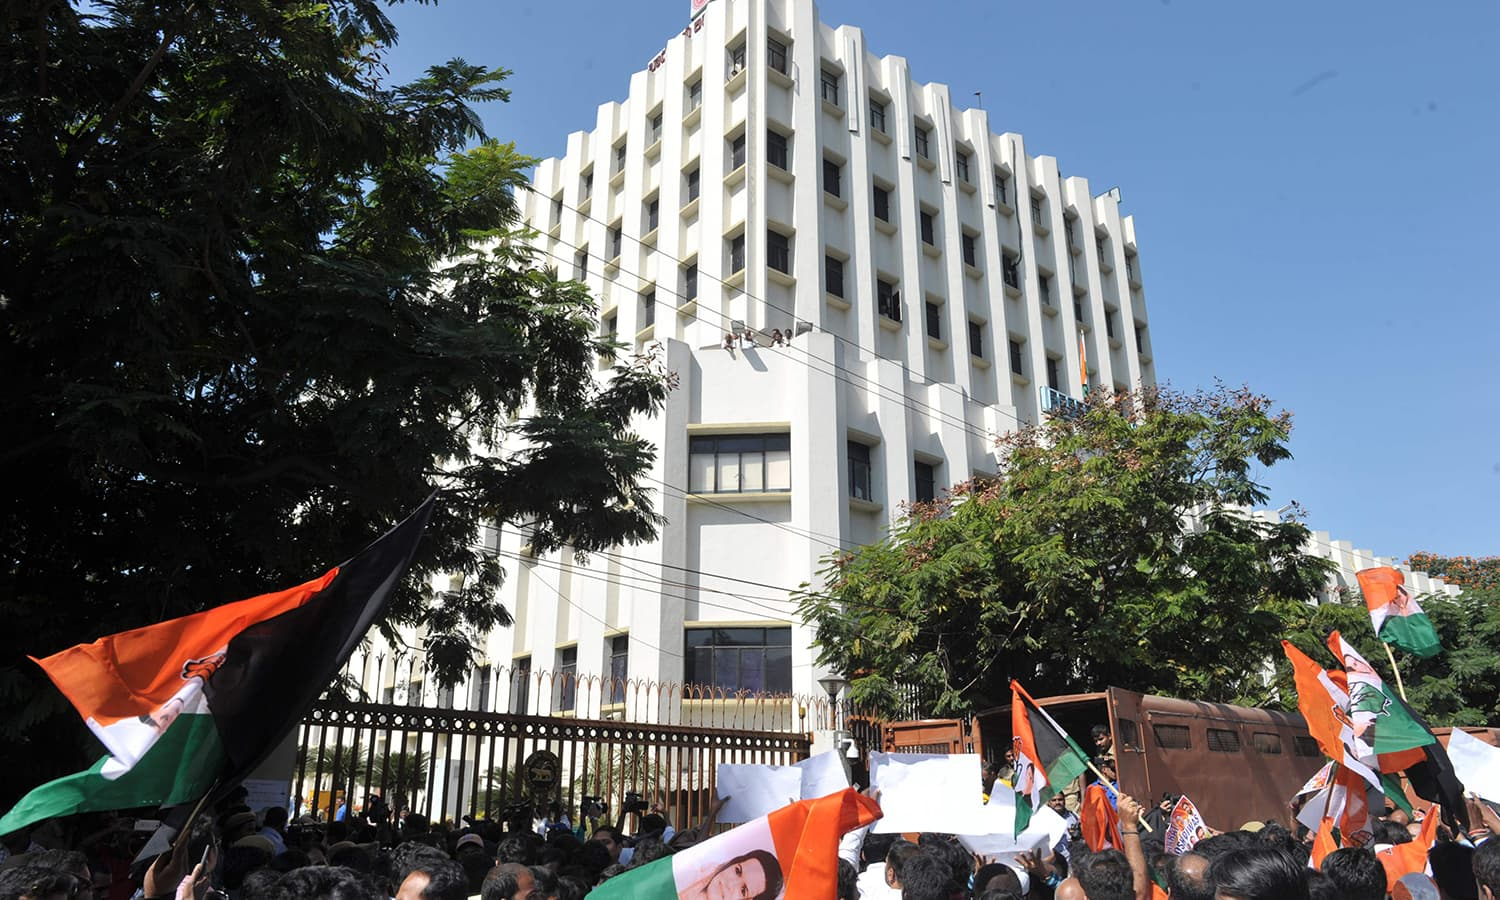 Members of the Congress party hold up the banned 500 and 1000 rupee notes as they shout slogans during a protest as part of 'Jan Aakrosh Diwas' in front of the Reserve Bank of India